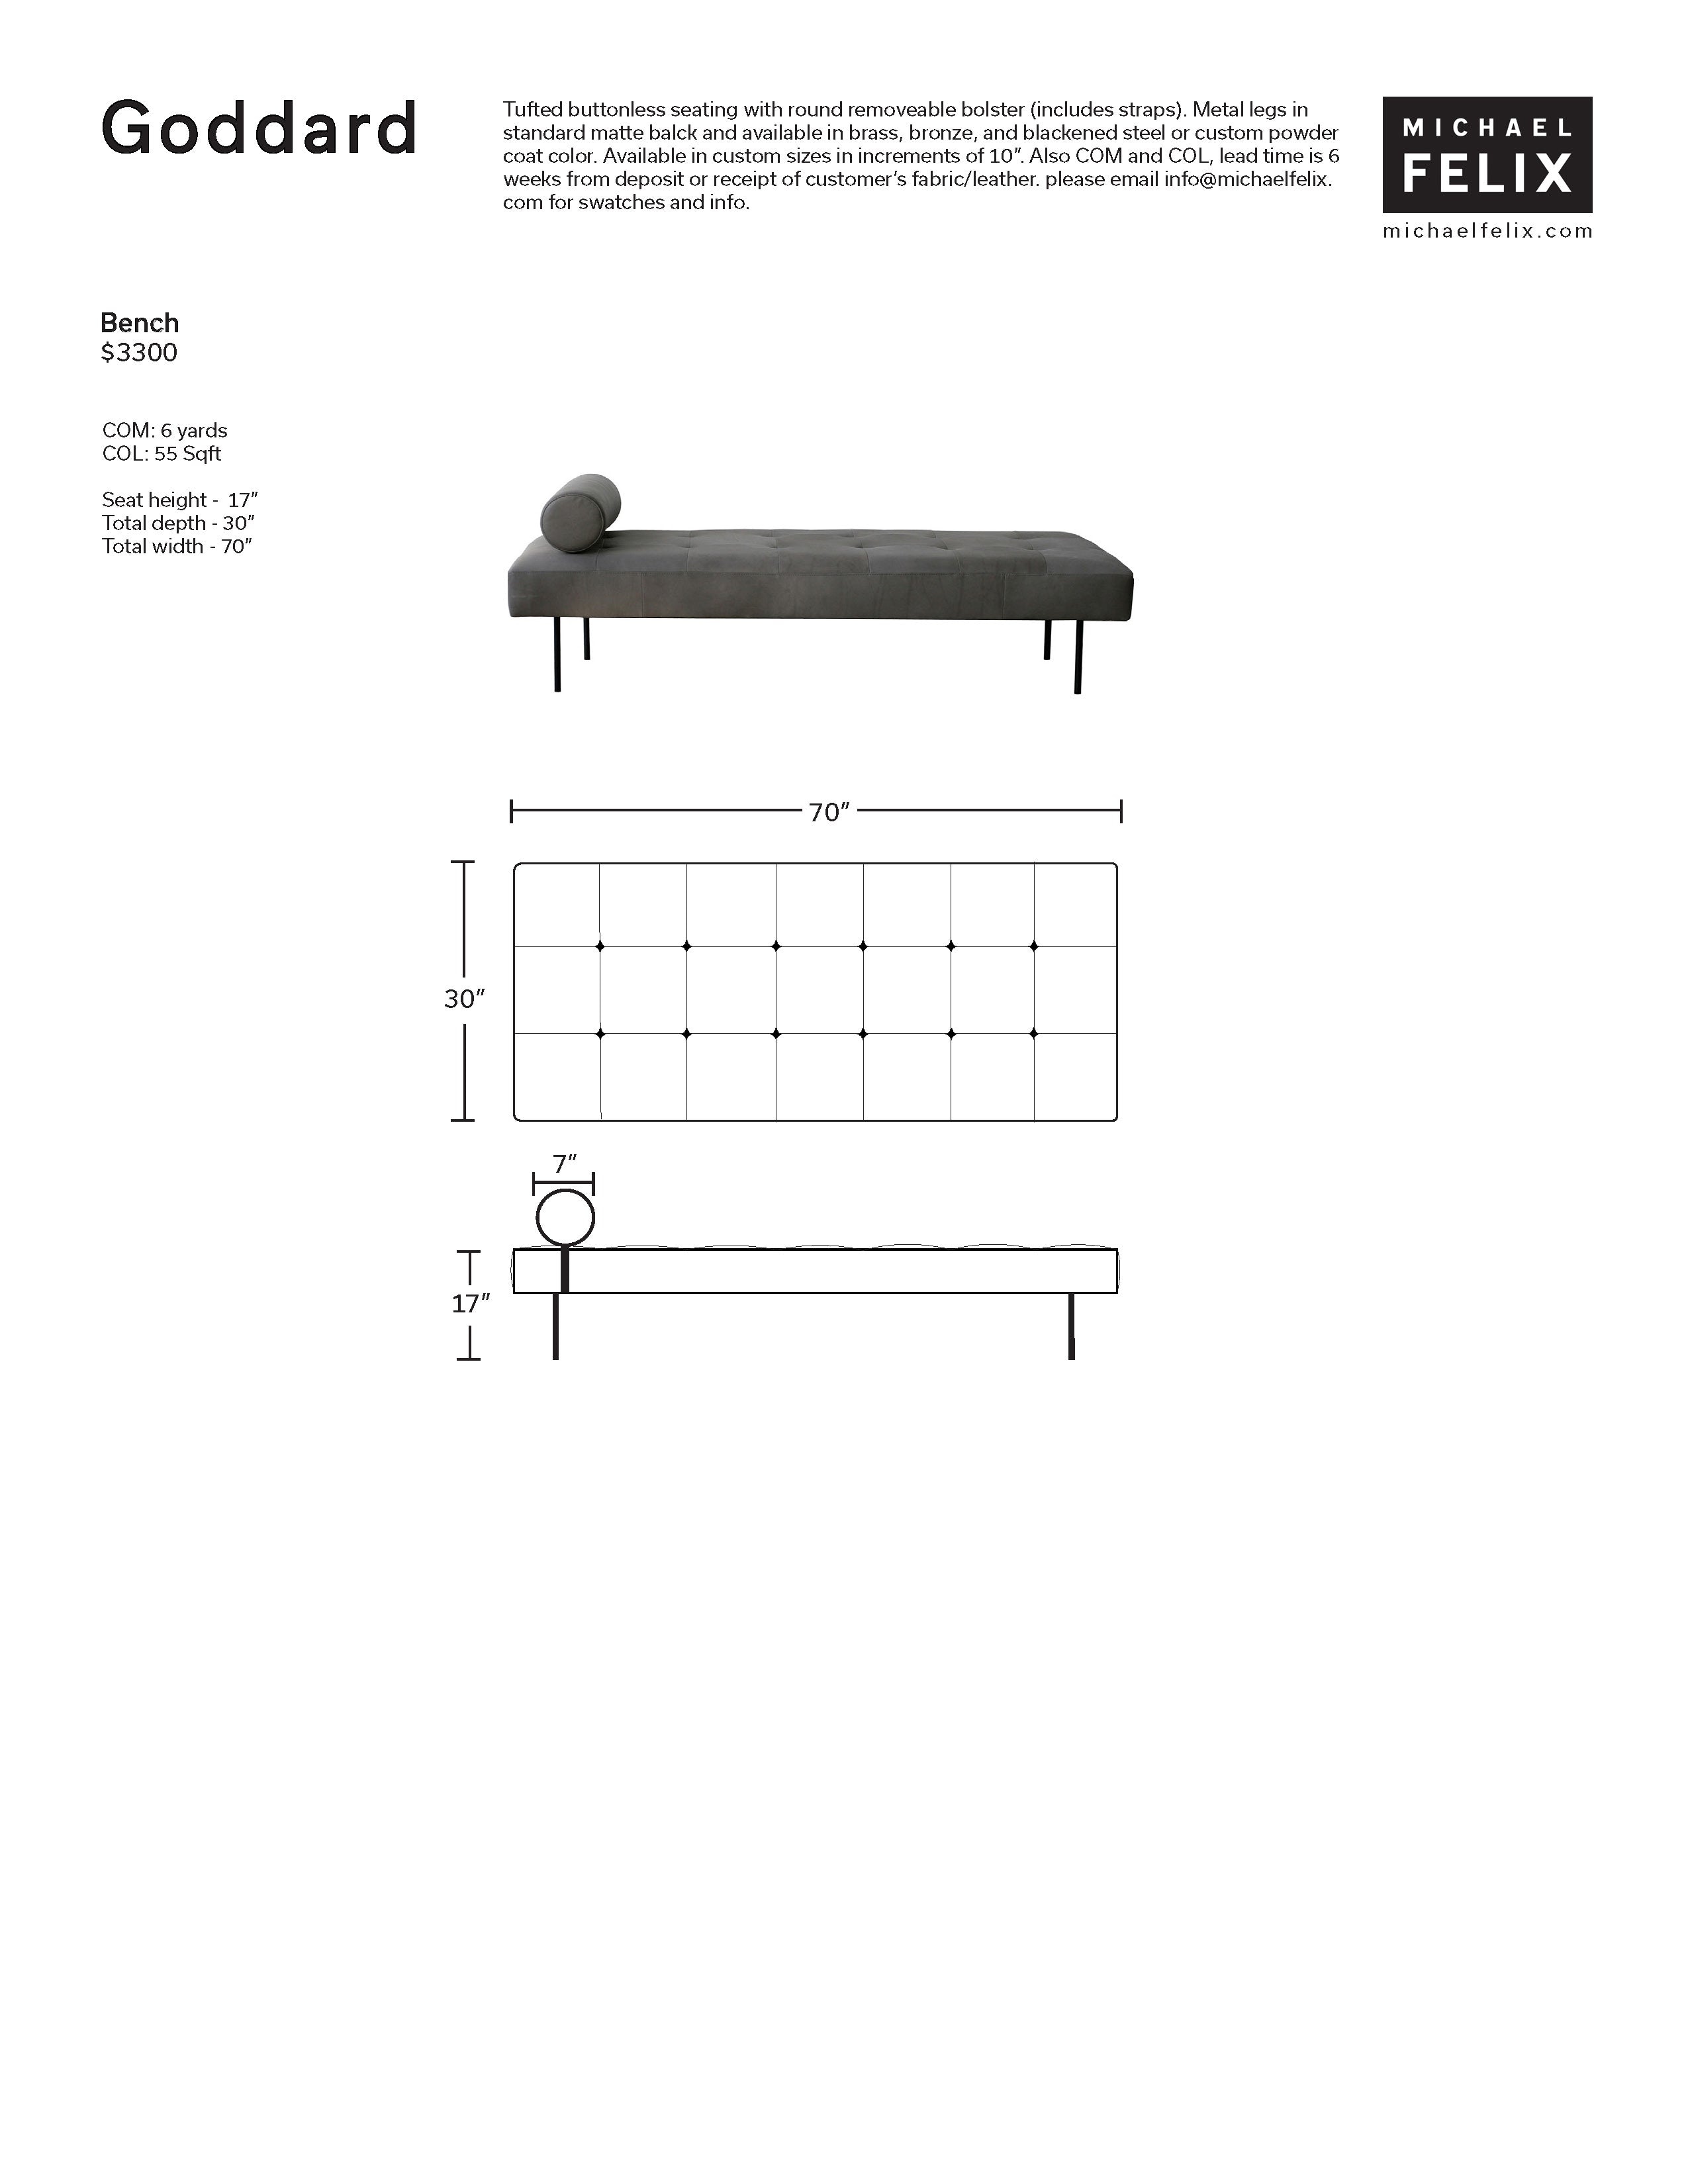 Michael Felix Goddard Bench Tear Sheet